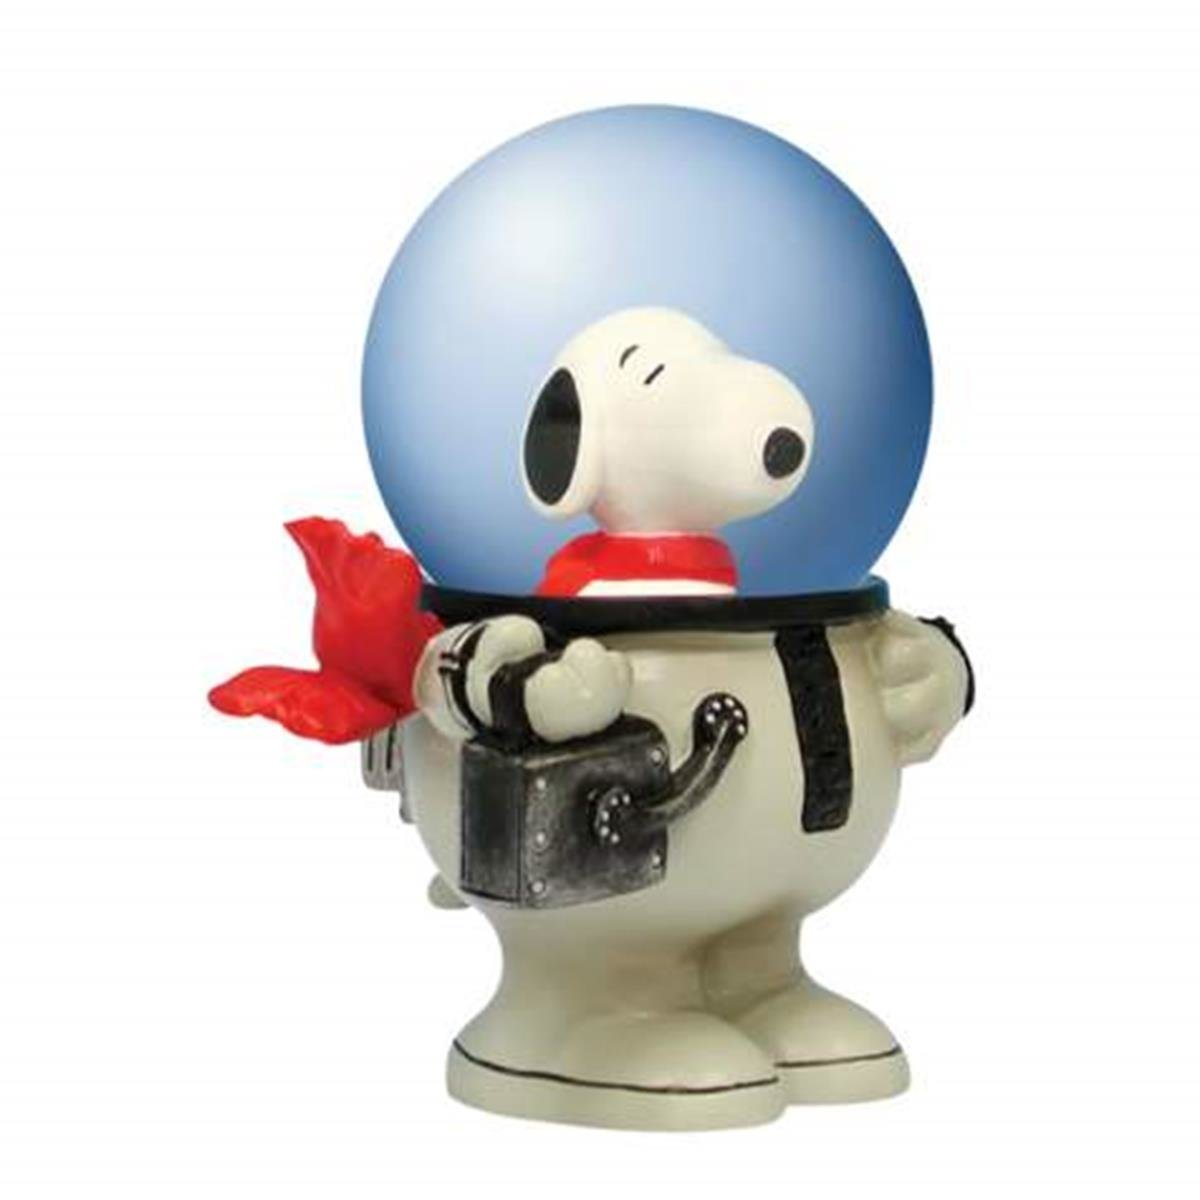 WL SS-WL-18238, 45mm Peanuts Snoopy the Dog in White Astronaut Suit Water Globe